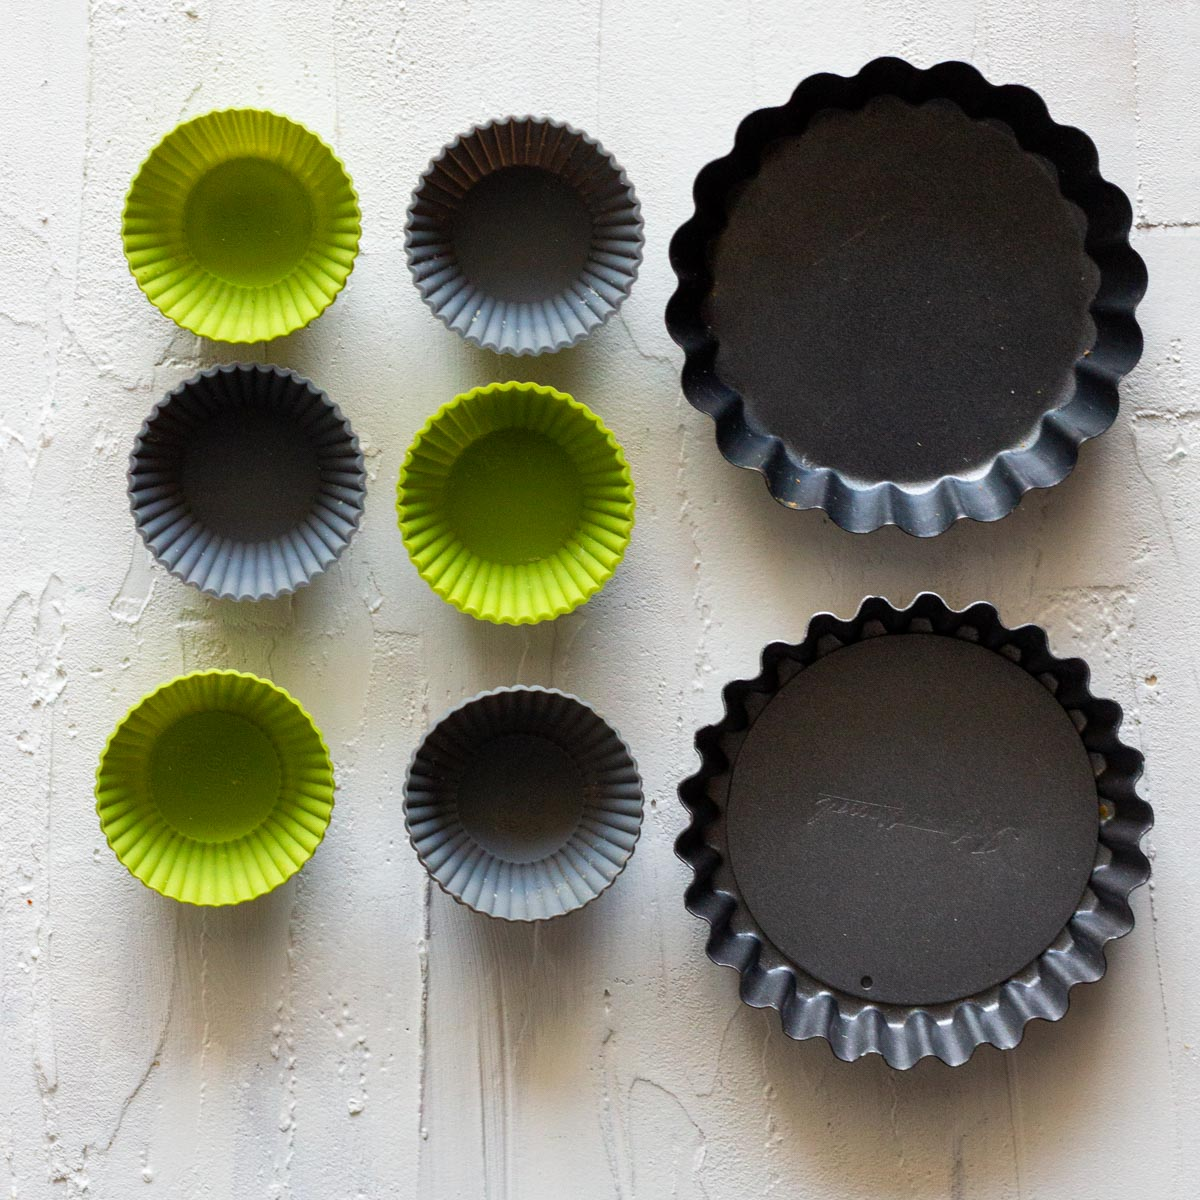 6 silicon baking molds in green and grey color on the left. Next to the silicon molds are non-stick baking molds.